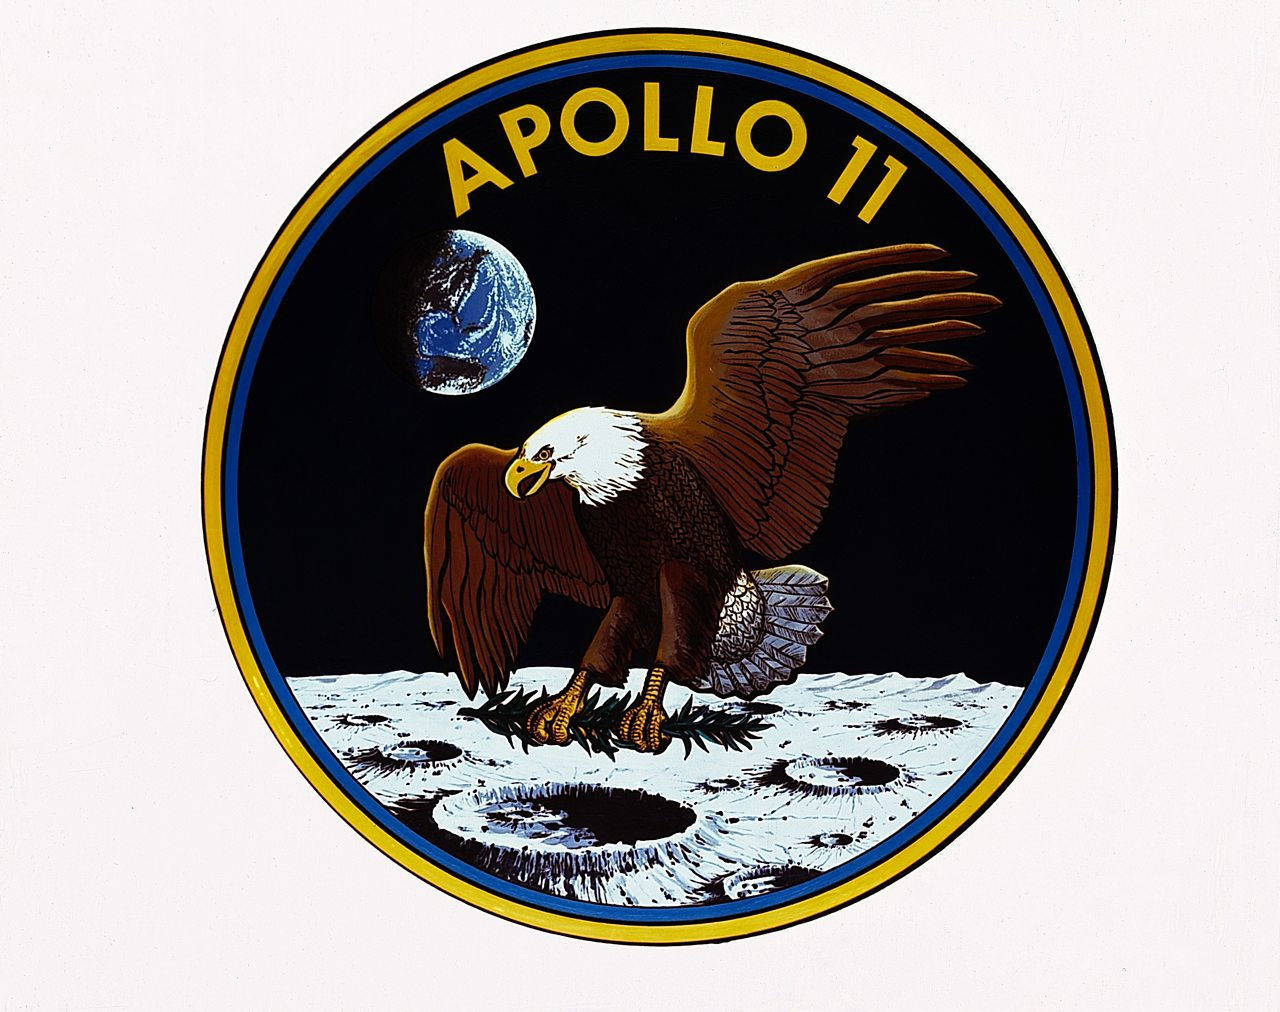 The Apollo 11 mission badge showing an eagle on the moon.